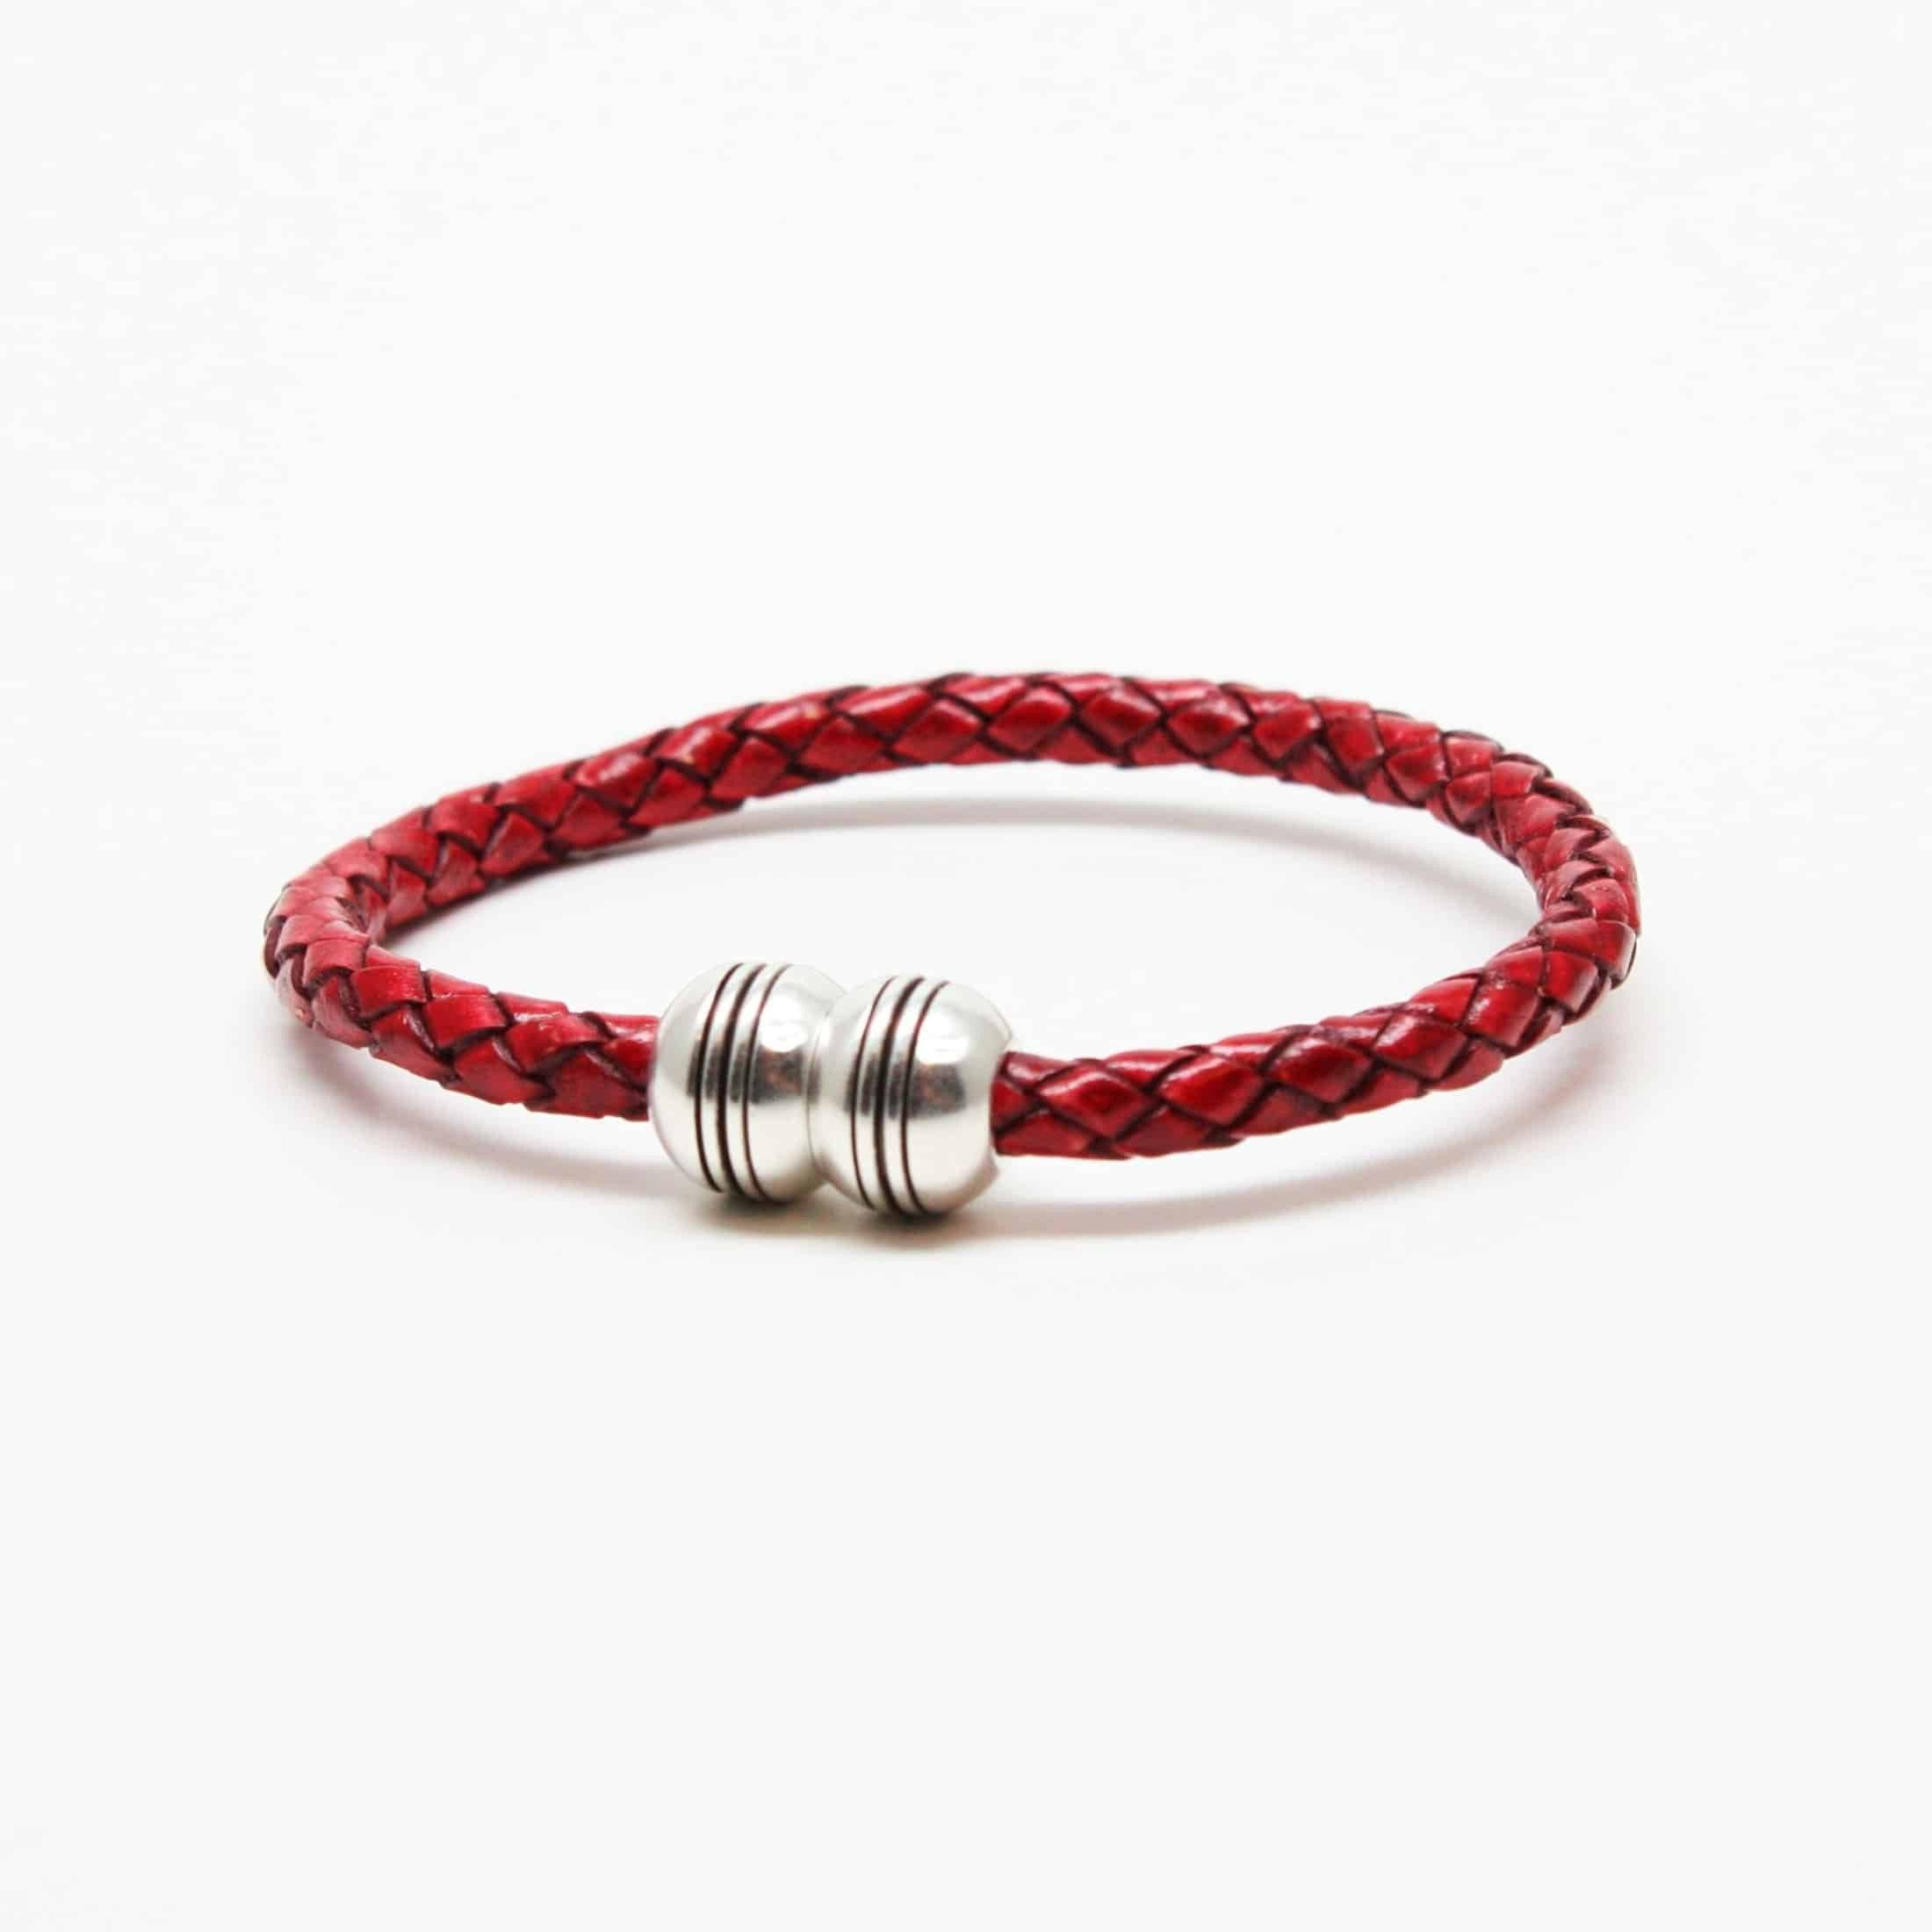 Braided Leather Hemisphere Bracelet - Red,BRACELET,Gent Row, | GentRow.com